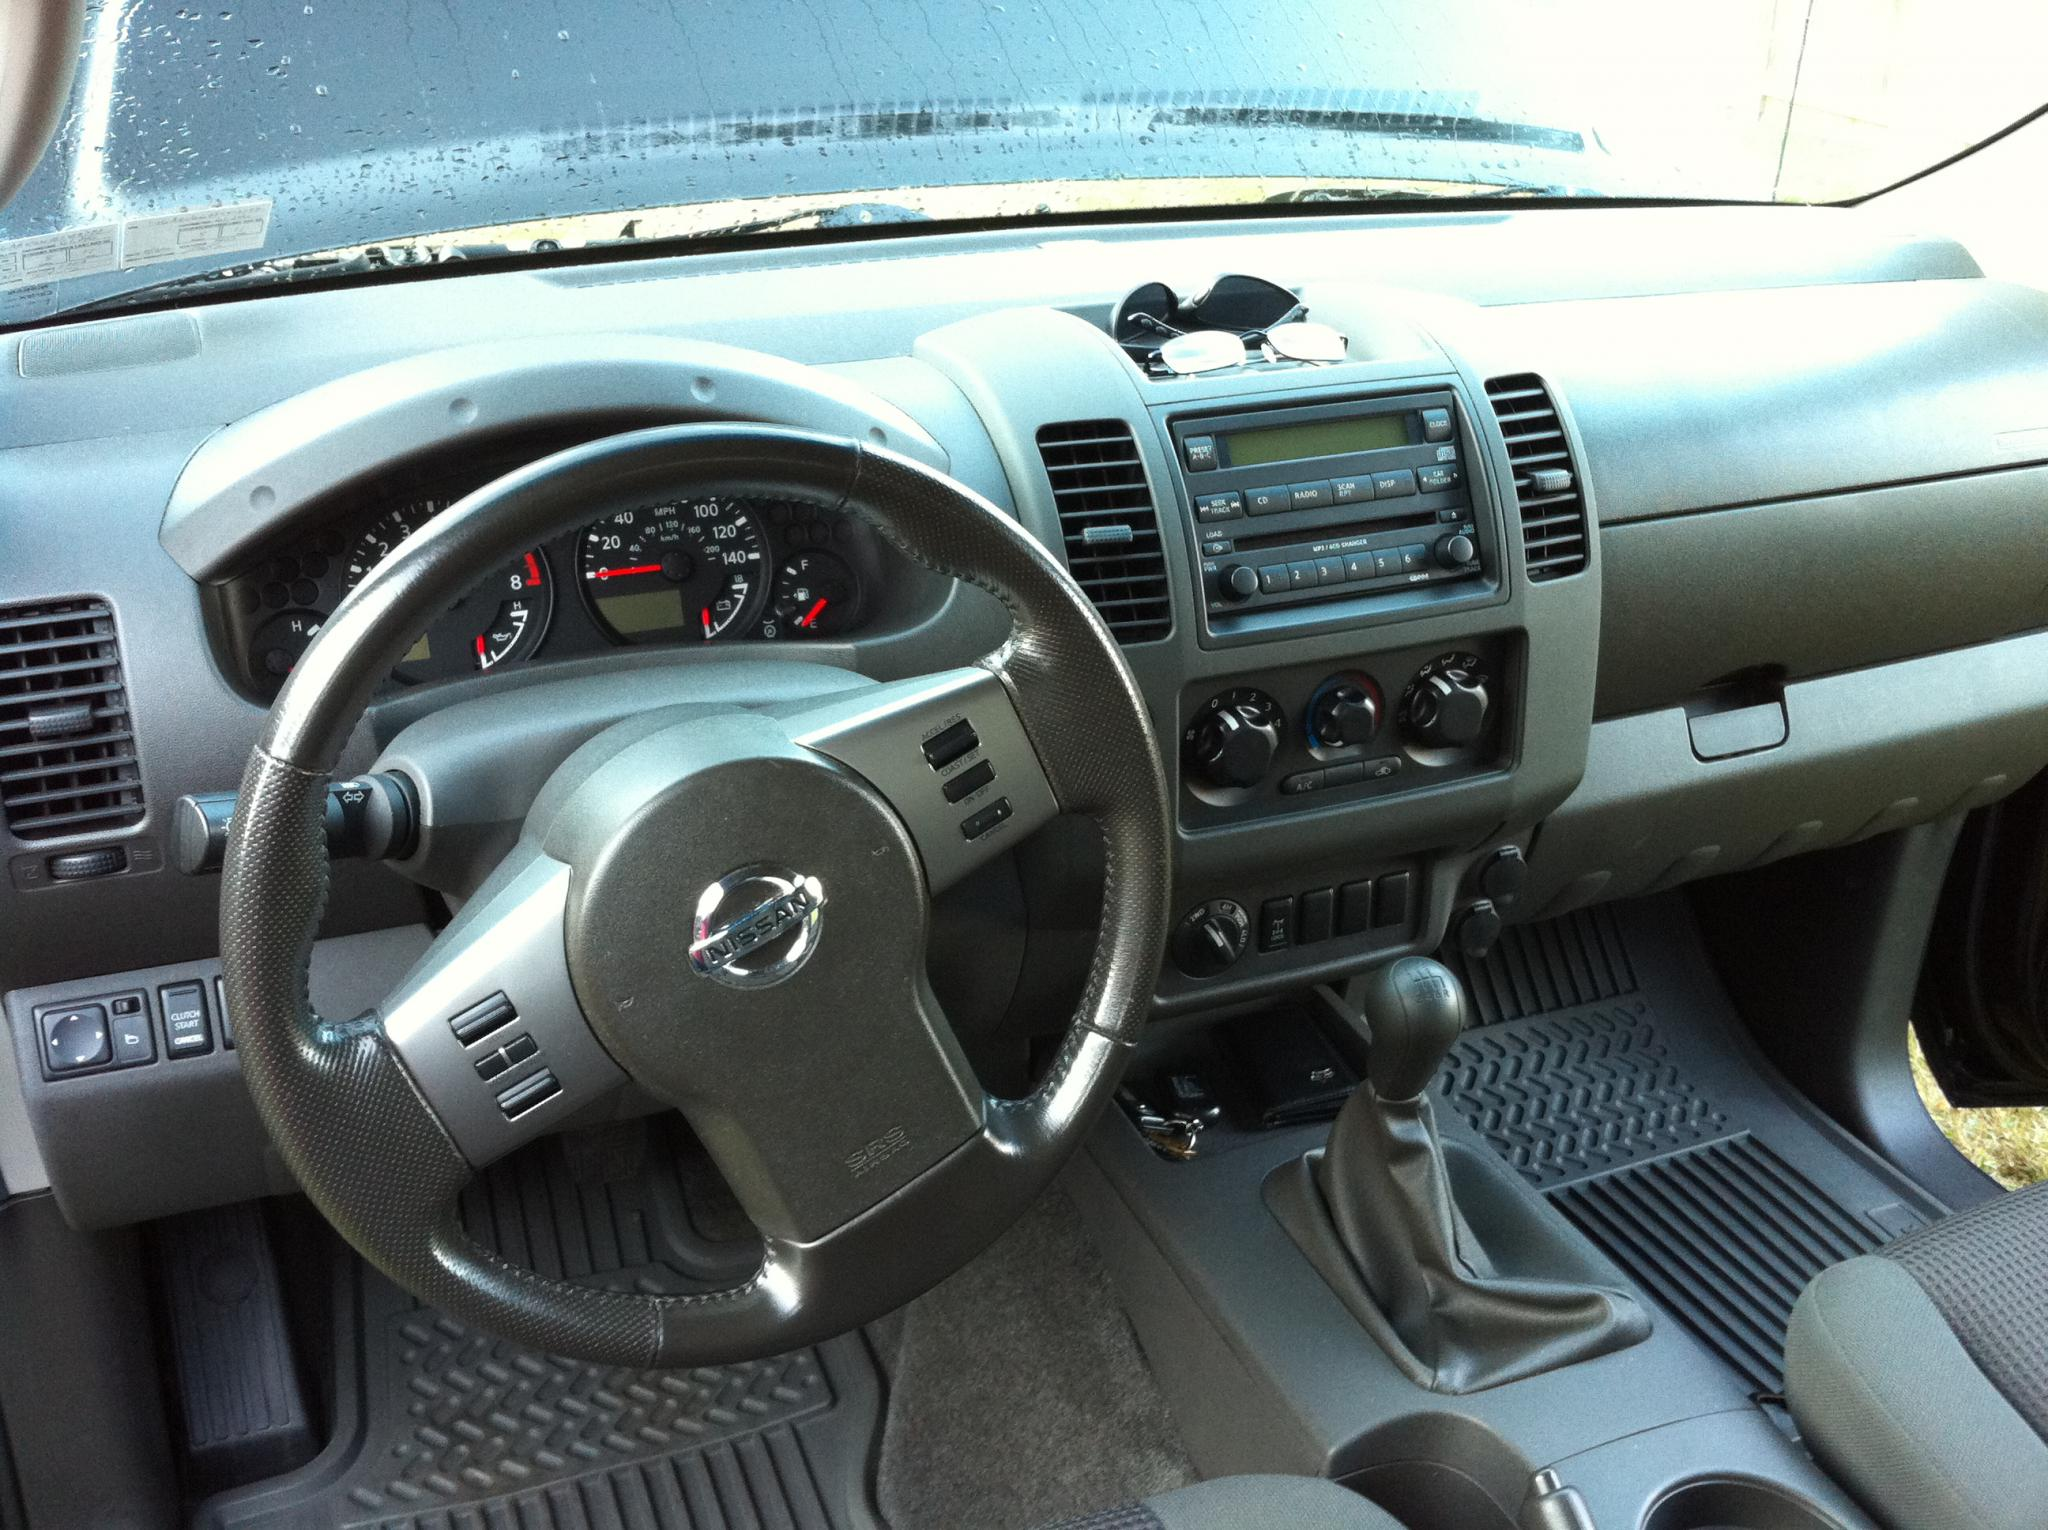 05 nismo kc for sale in pa nissan frontier forum click image for larger version name 05 nissan frontier nismo 004g views vanachro Choice Image